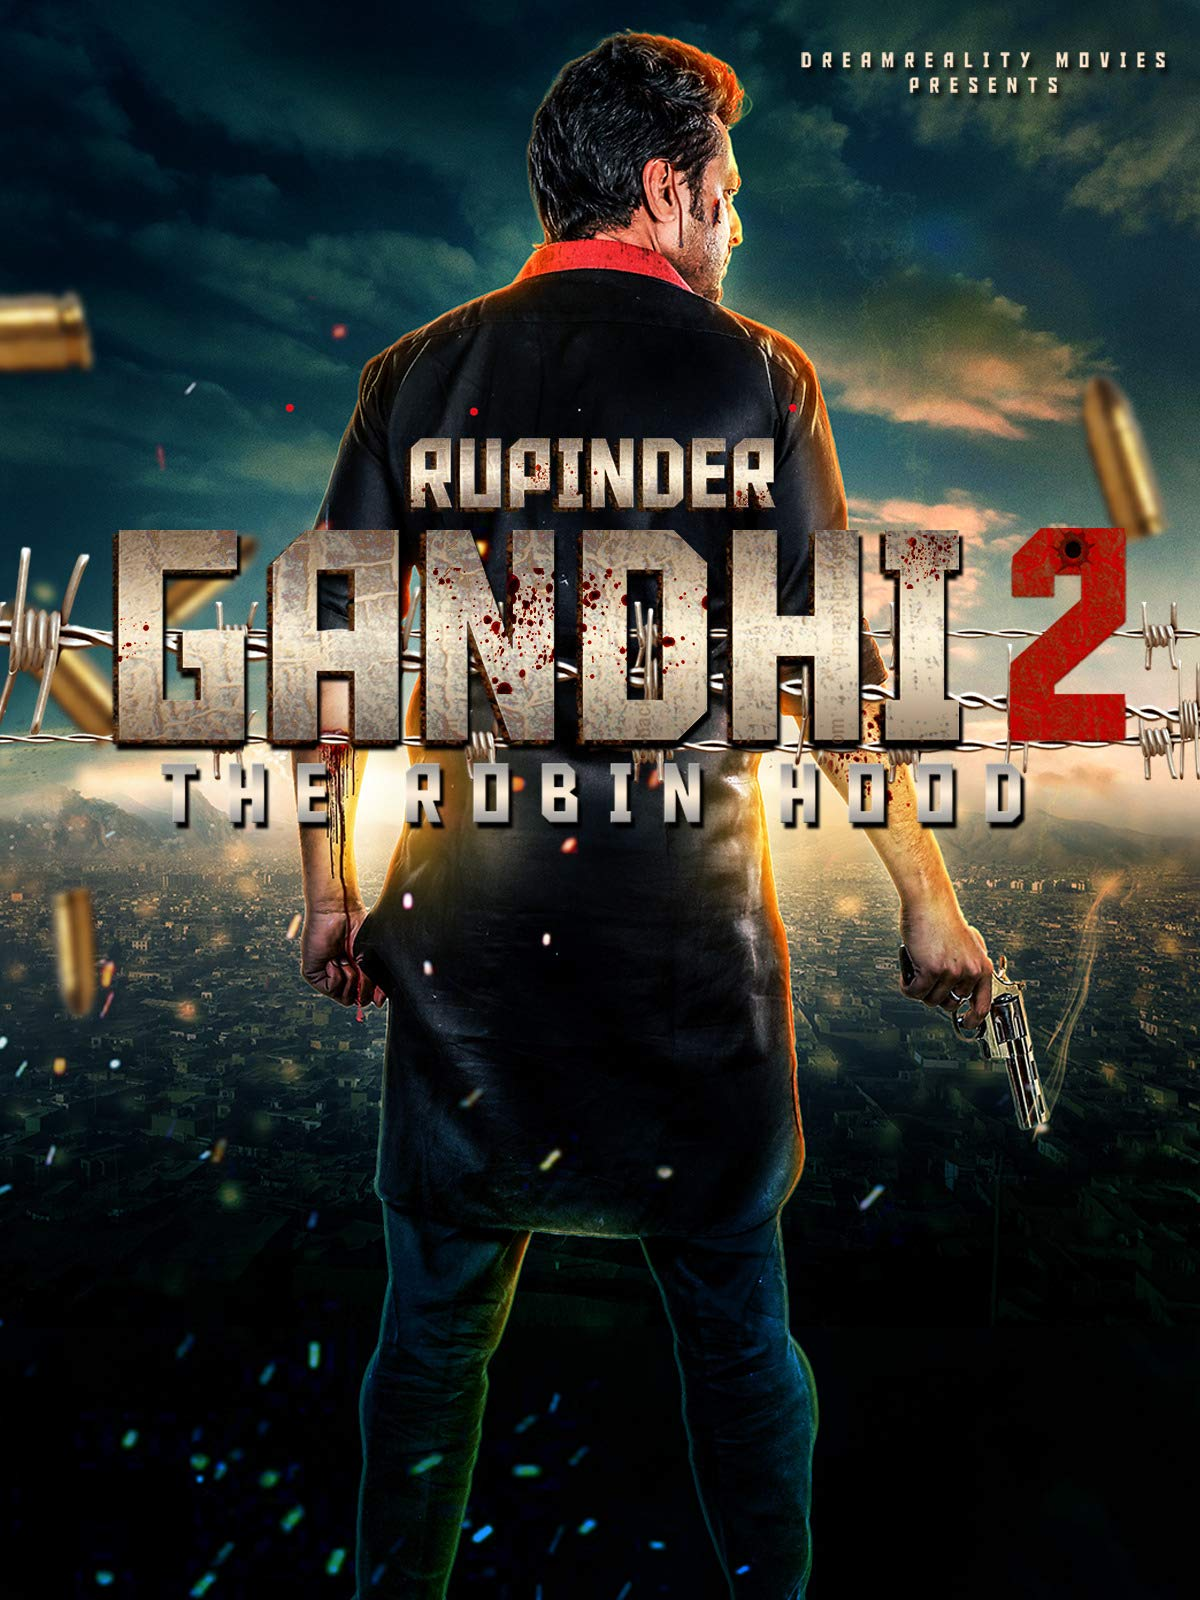 Rupinder Gandhi 2: The Robinhood